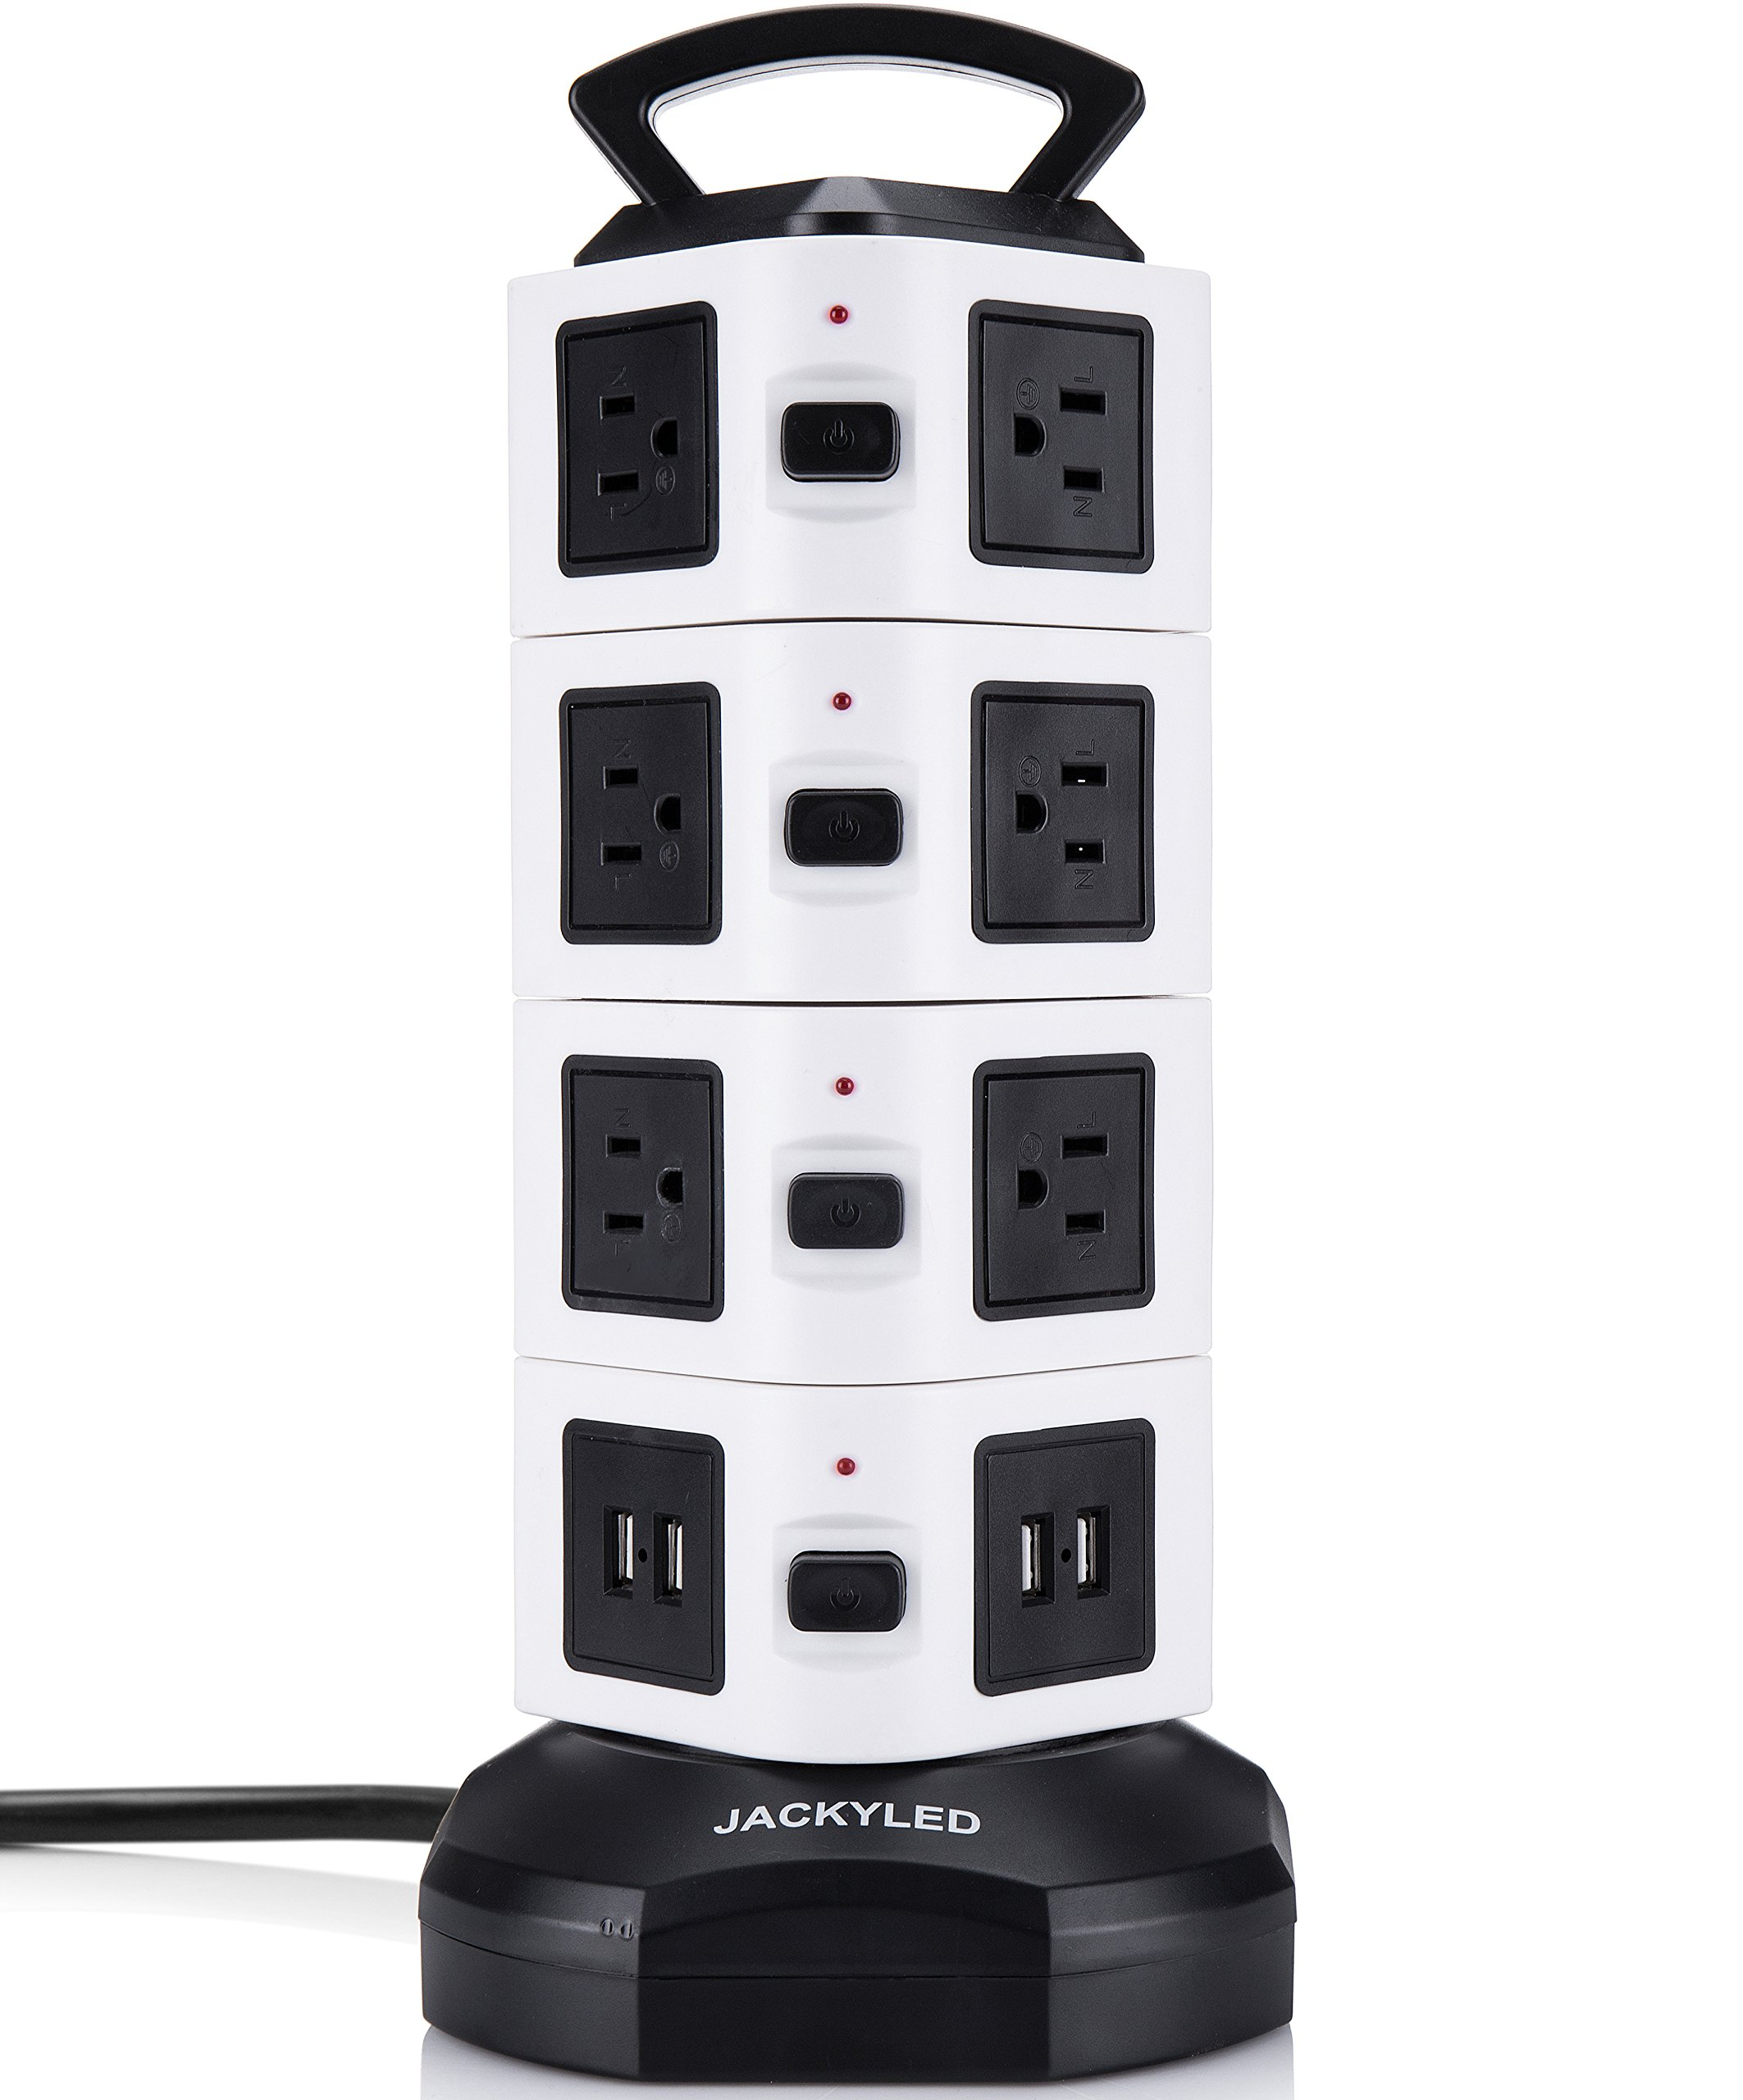 JACKYLED Power Strip - 14 Outlet Plugs with 4 USB Slot 6.5ft Cord Wire Extension 3000W Surge Protector Universal Socket Charging Station for PC Laptops Mobile Devices by JACKYLED (Image #1)